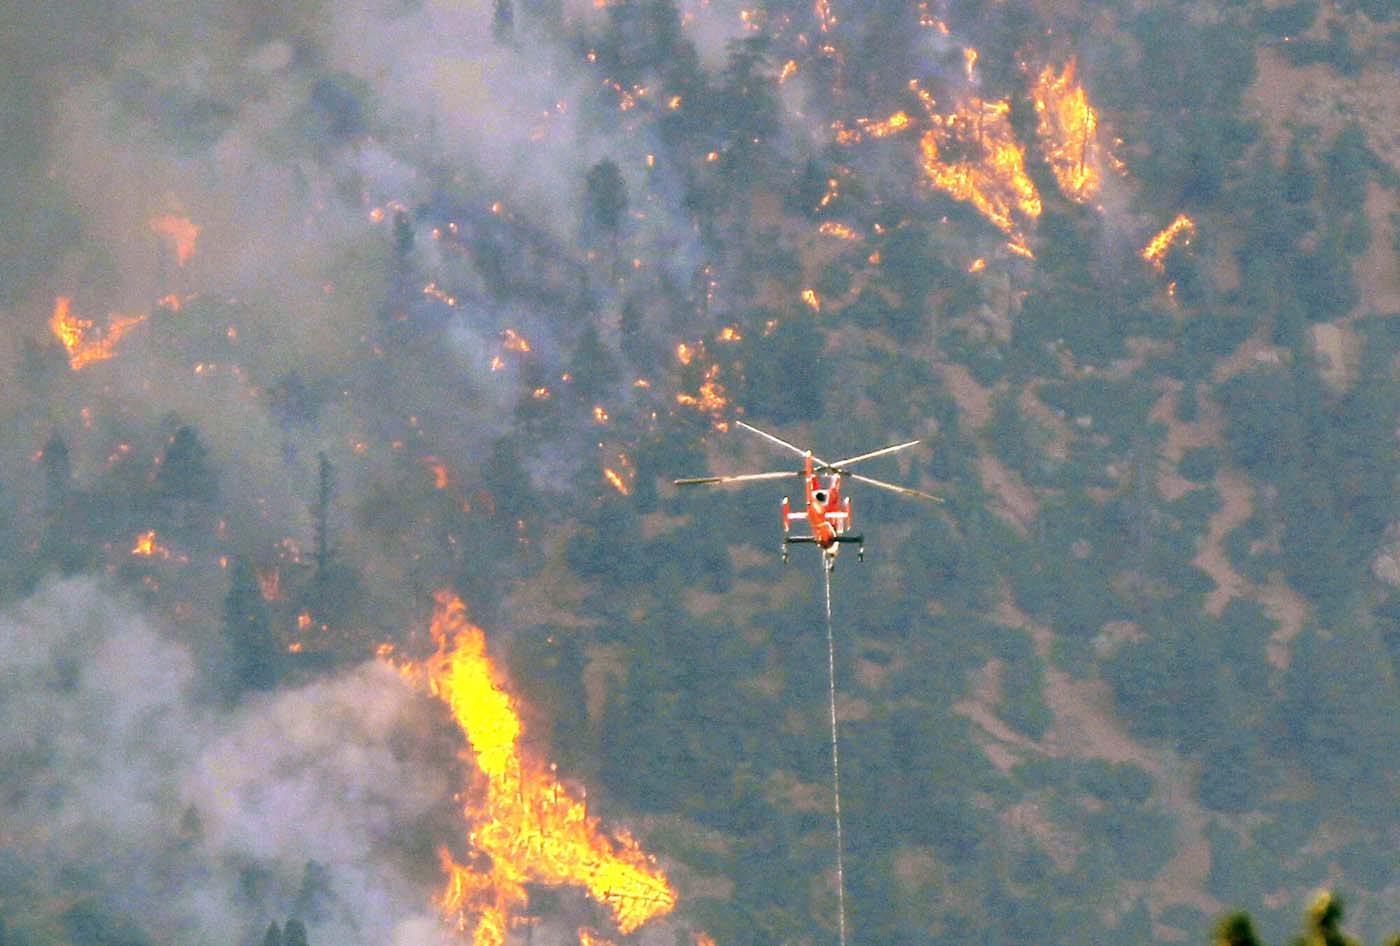 JUNE 26: A firefighting helicopter approaches the Waldo Canyon fire, west of Colorado Springs, in Colorado June 26, 2012. (Rick Wilking/Reuters)